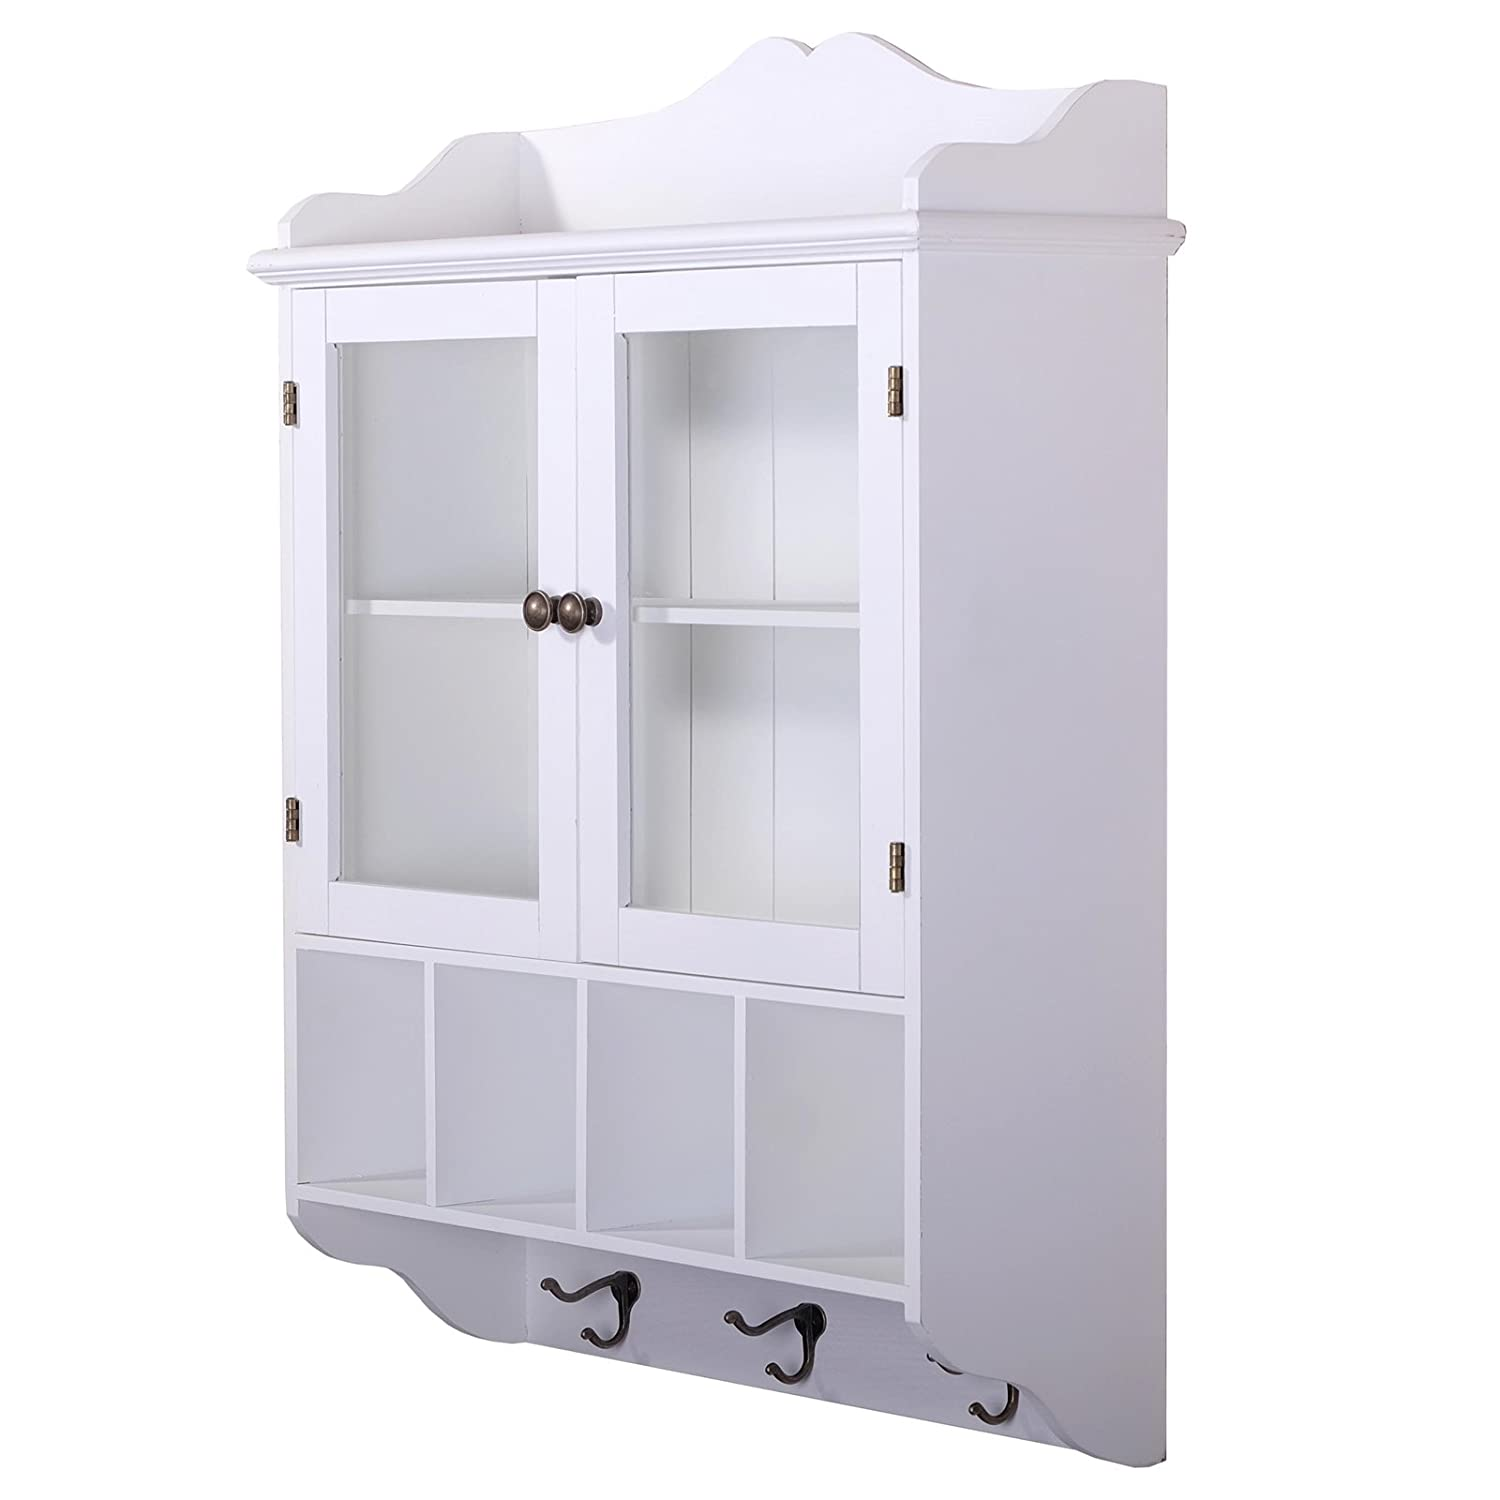 DESIGN DELIGHTS COUNTRY STYLE WALL CABINET LOTTA | antique white, 4 compartments, glass door | shabby chic xtradefactory